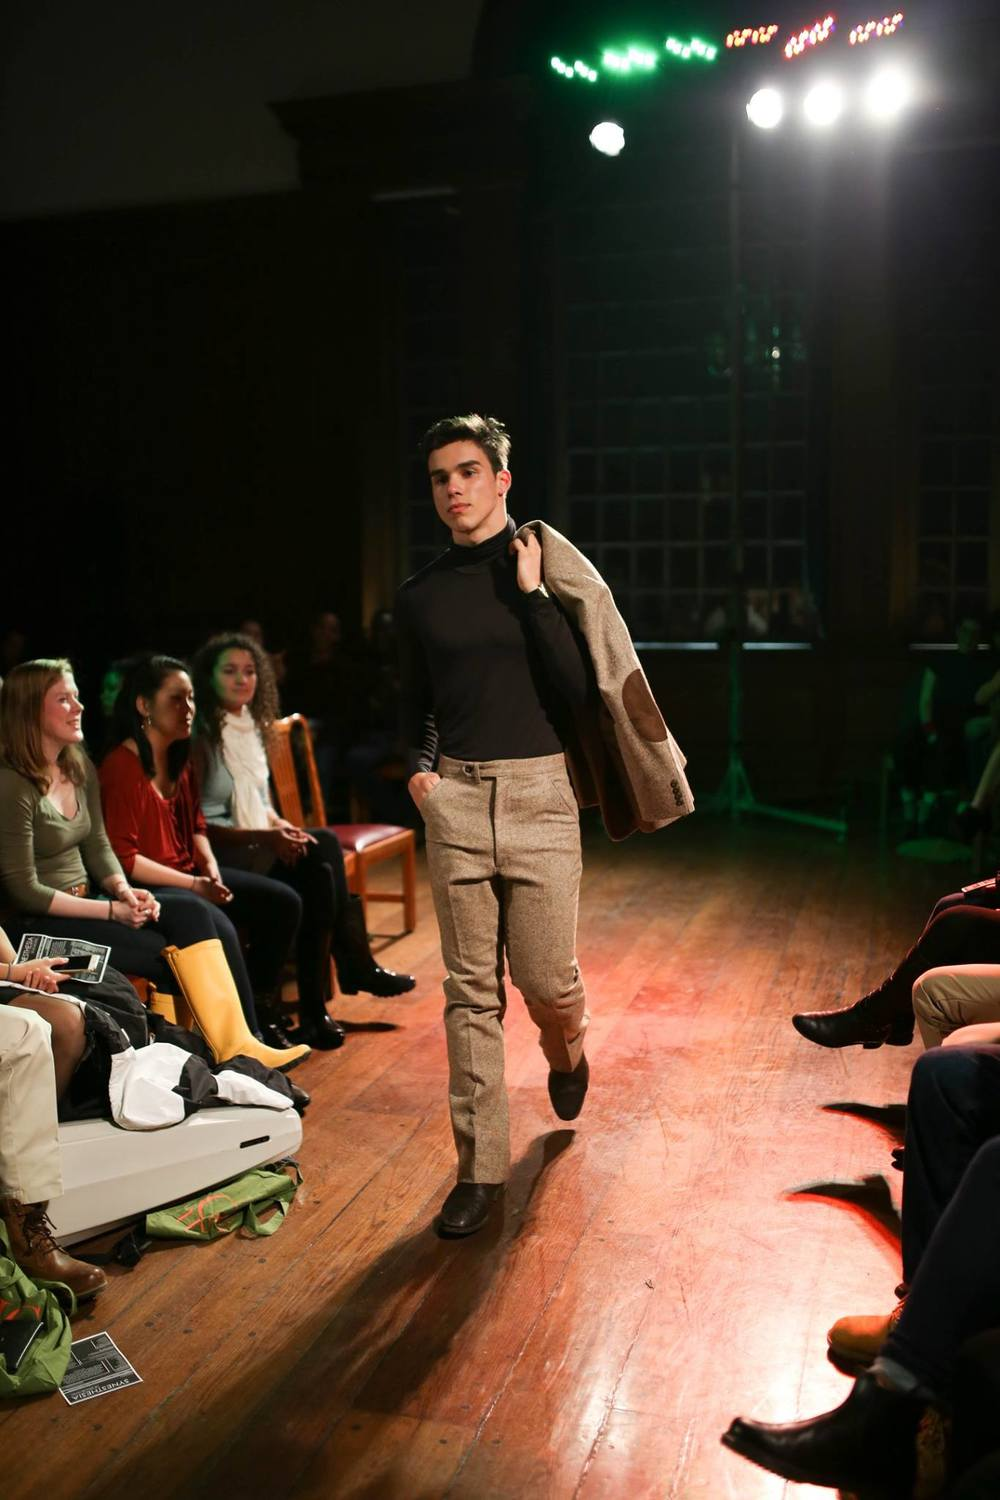 yale_Y_fashion_house_fashion_show_vintanthromodern_23.jpg